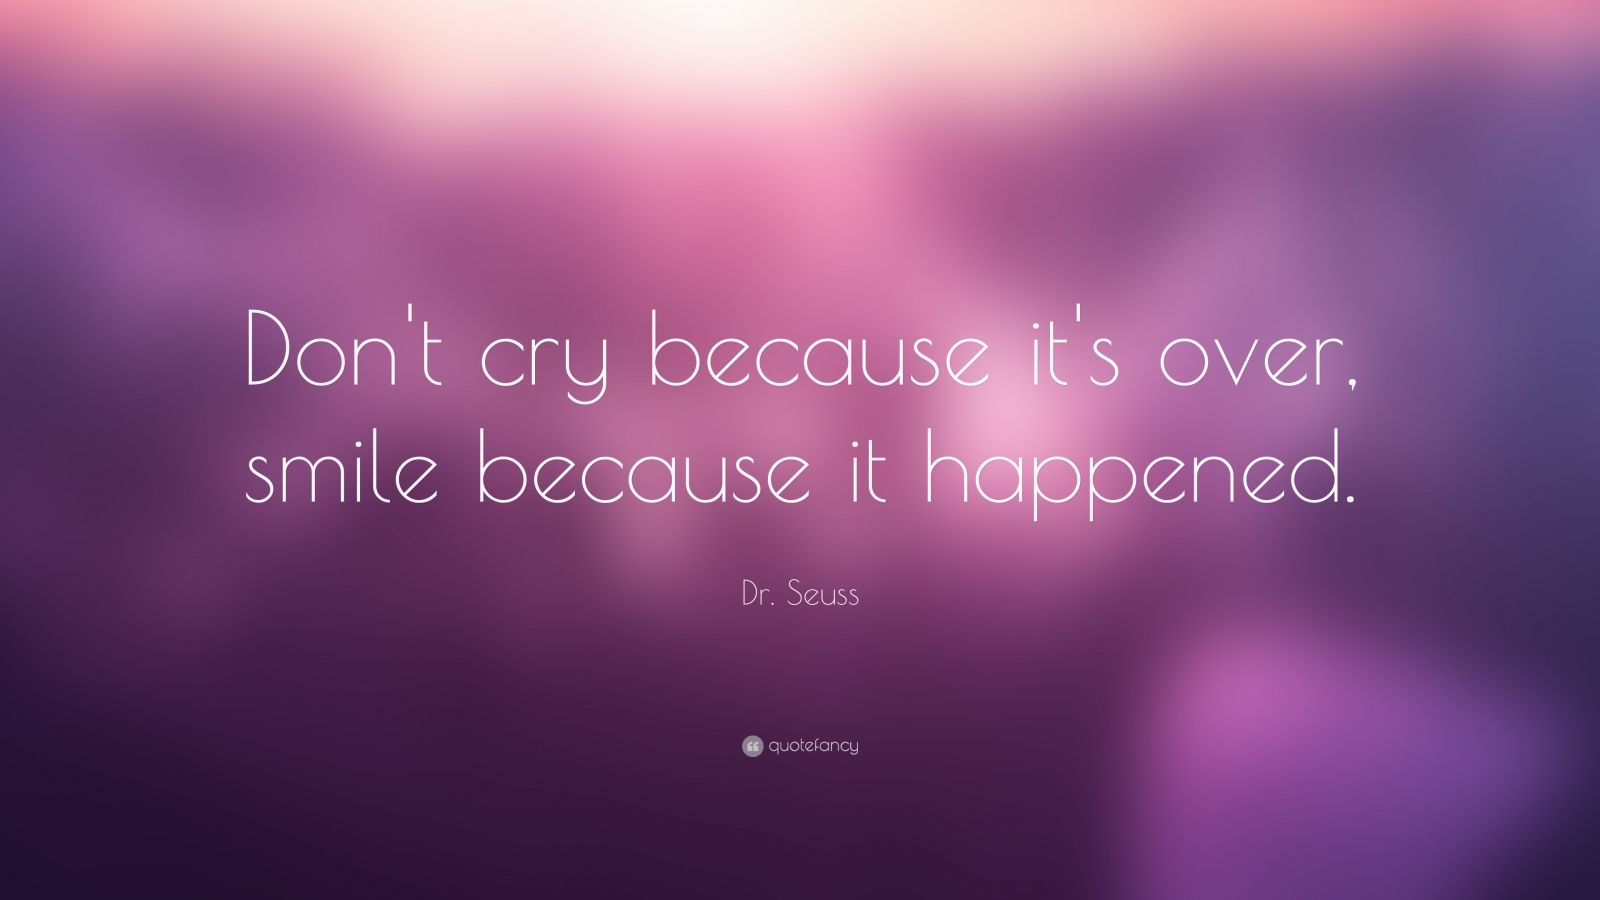 Quotes Dr Seuss · Happiness Quotes: U201cDonu0027t Cry Because Itu0027s Over, Smile  Because It Happened